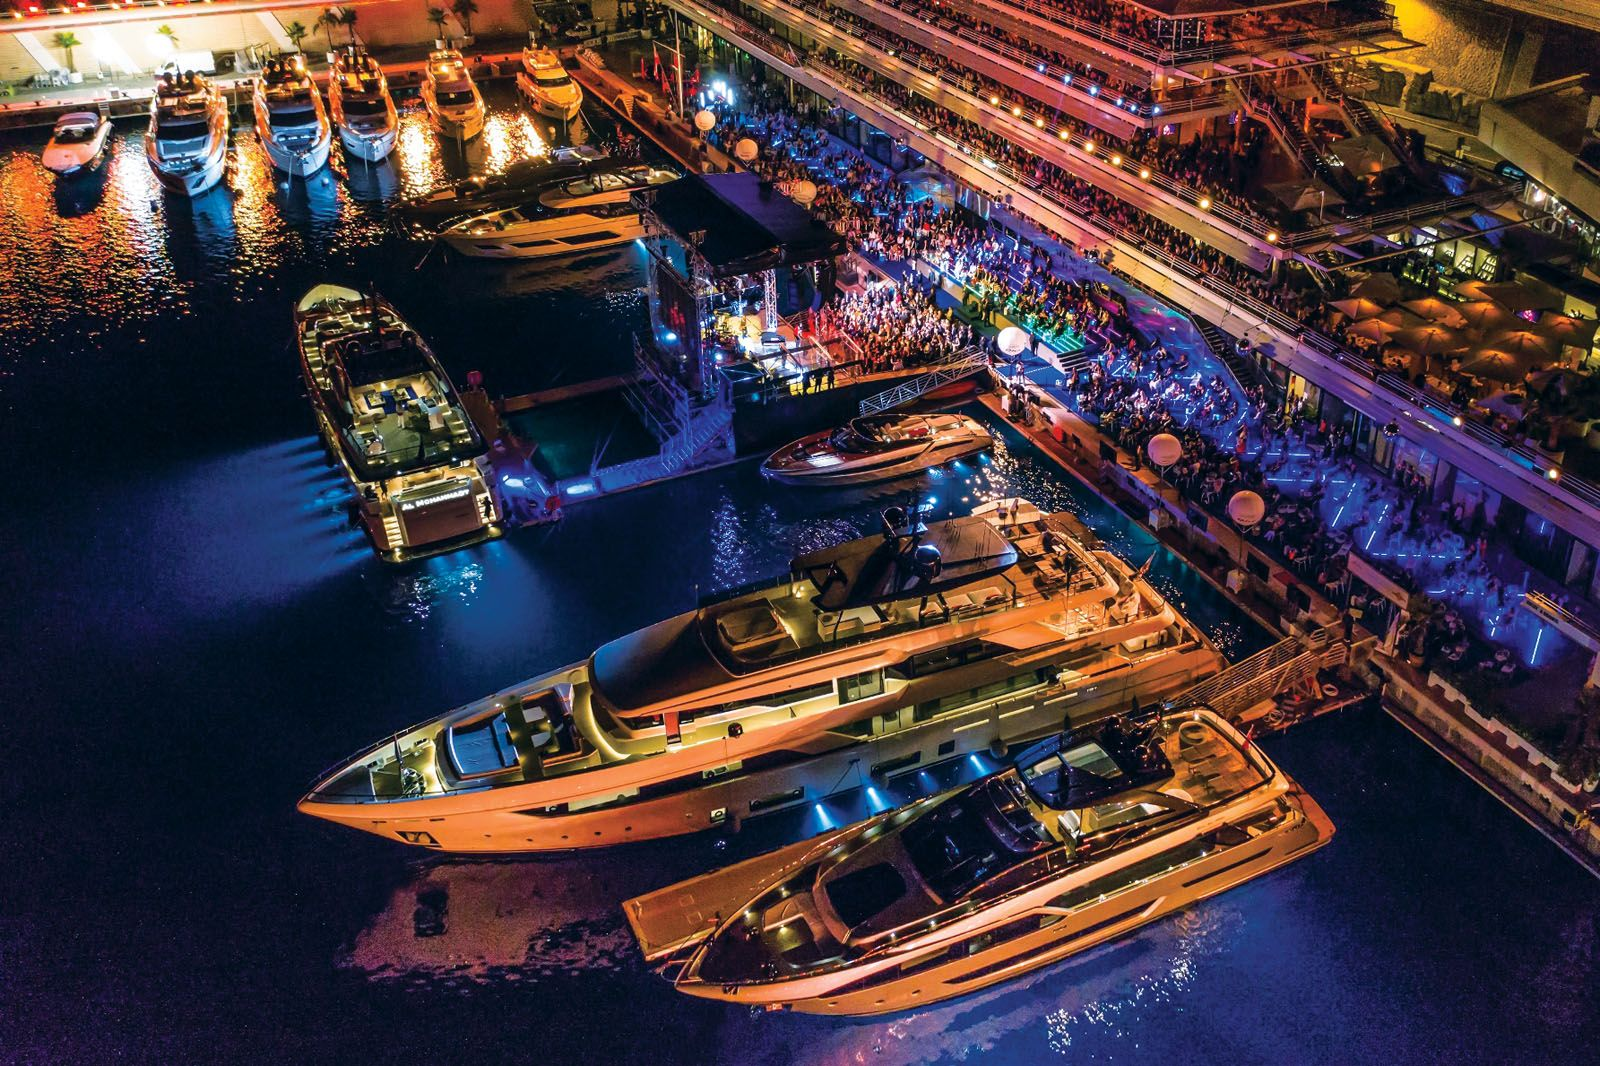 The glowing display of the Ferretti Group's yachts this year